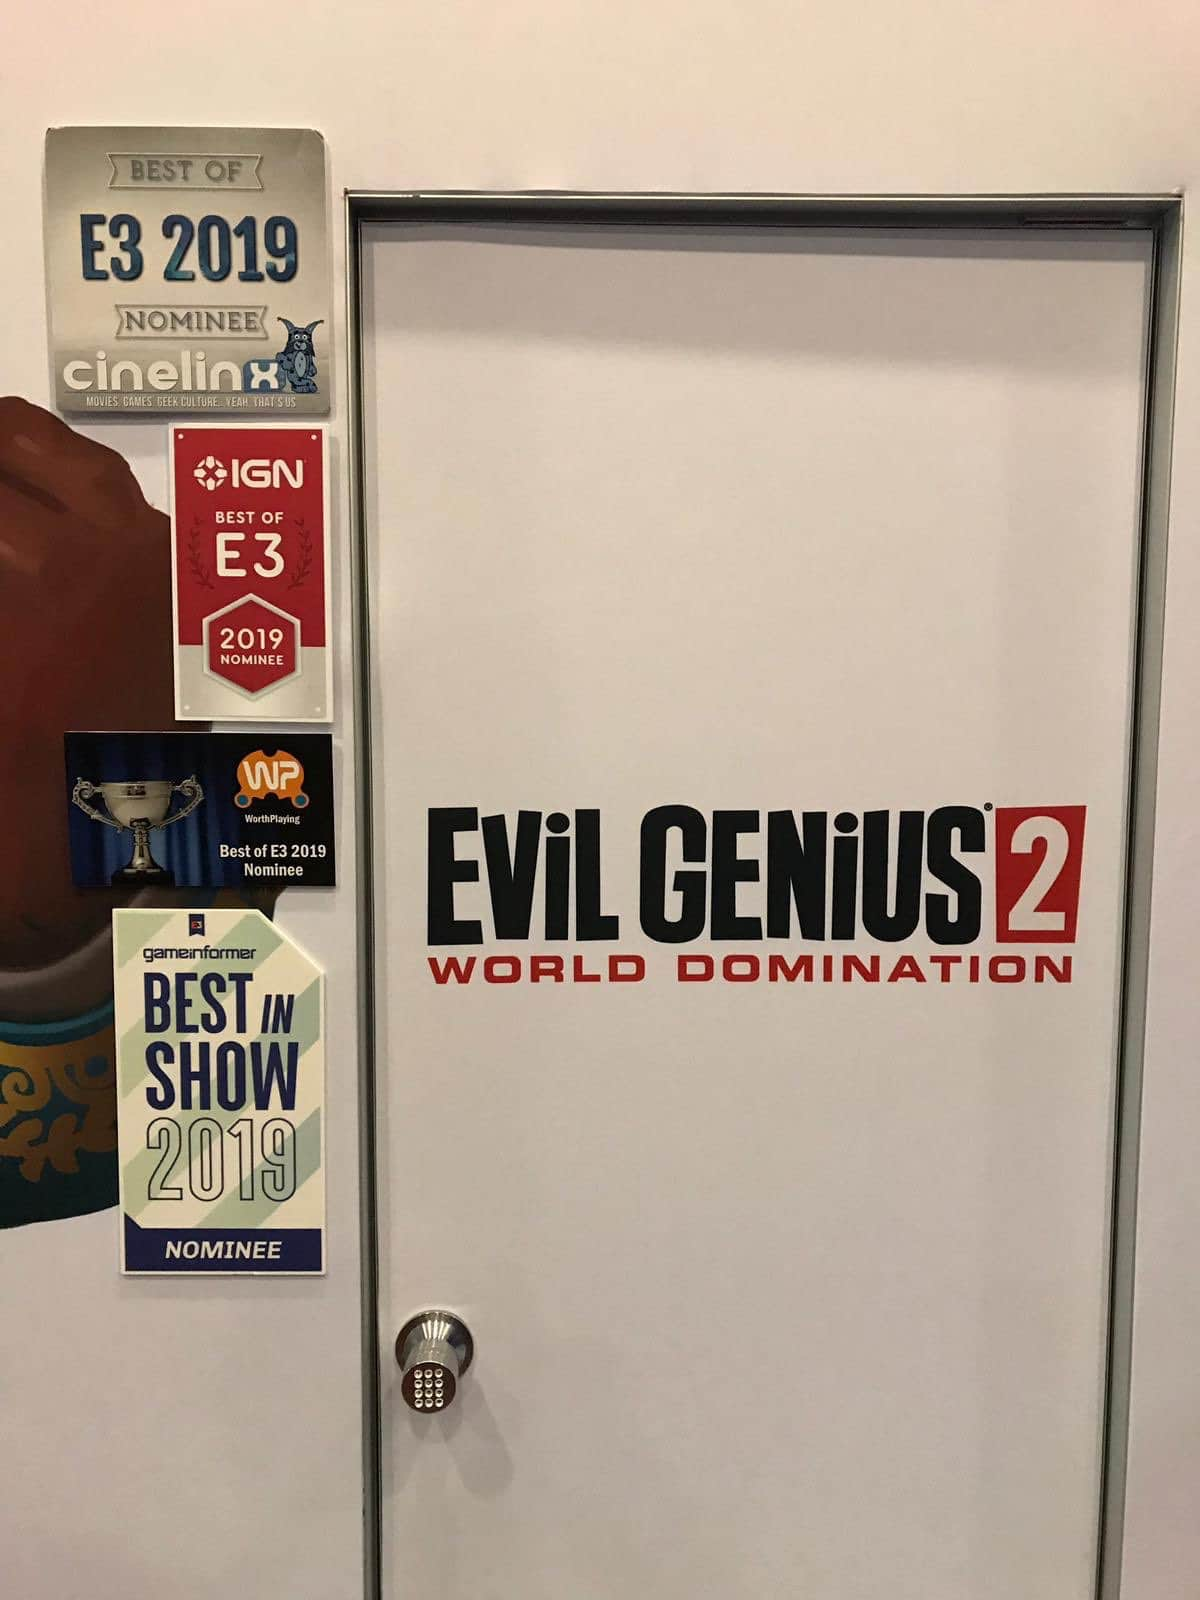 Congrats Rebellion on E3 Awards!